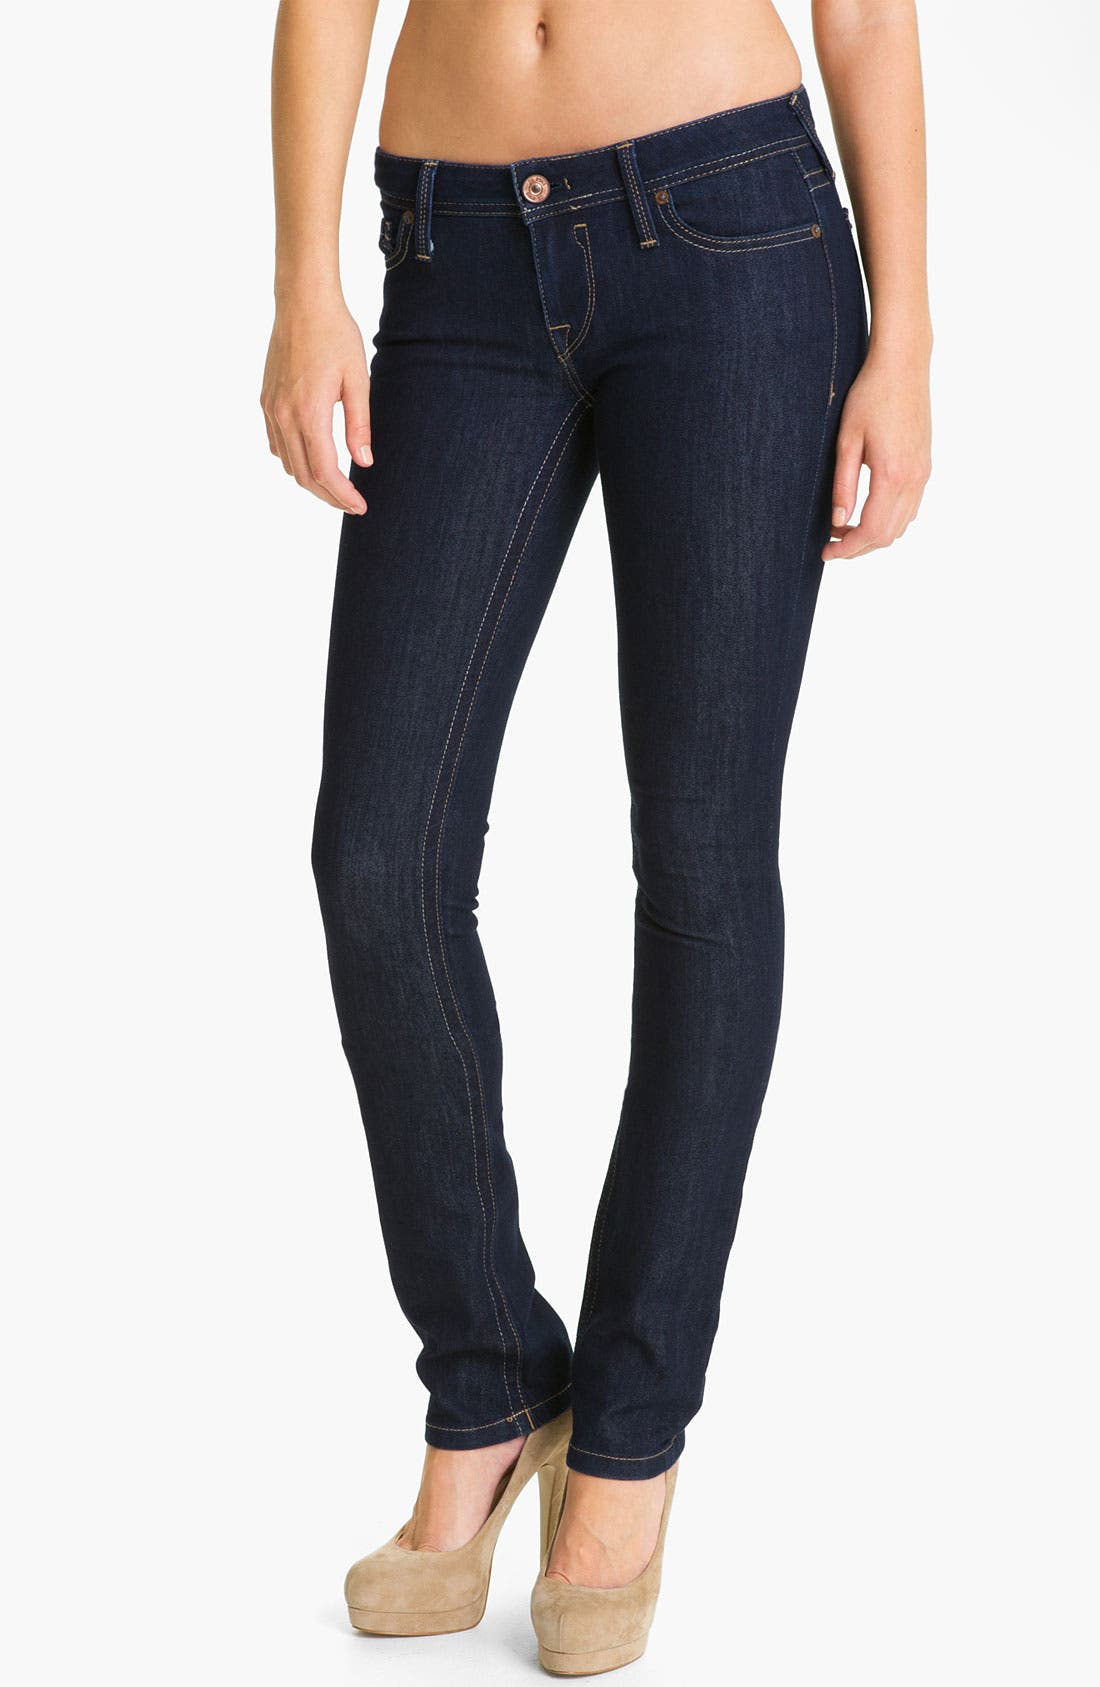 Main Image - DL1961 'Kate' X-Fit Stretch Denim Slim Straight Leg Jeans (Twilight Wash)